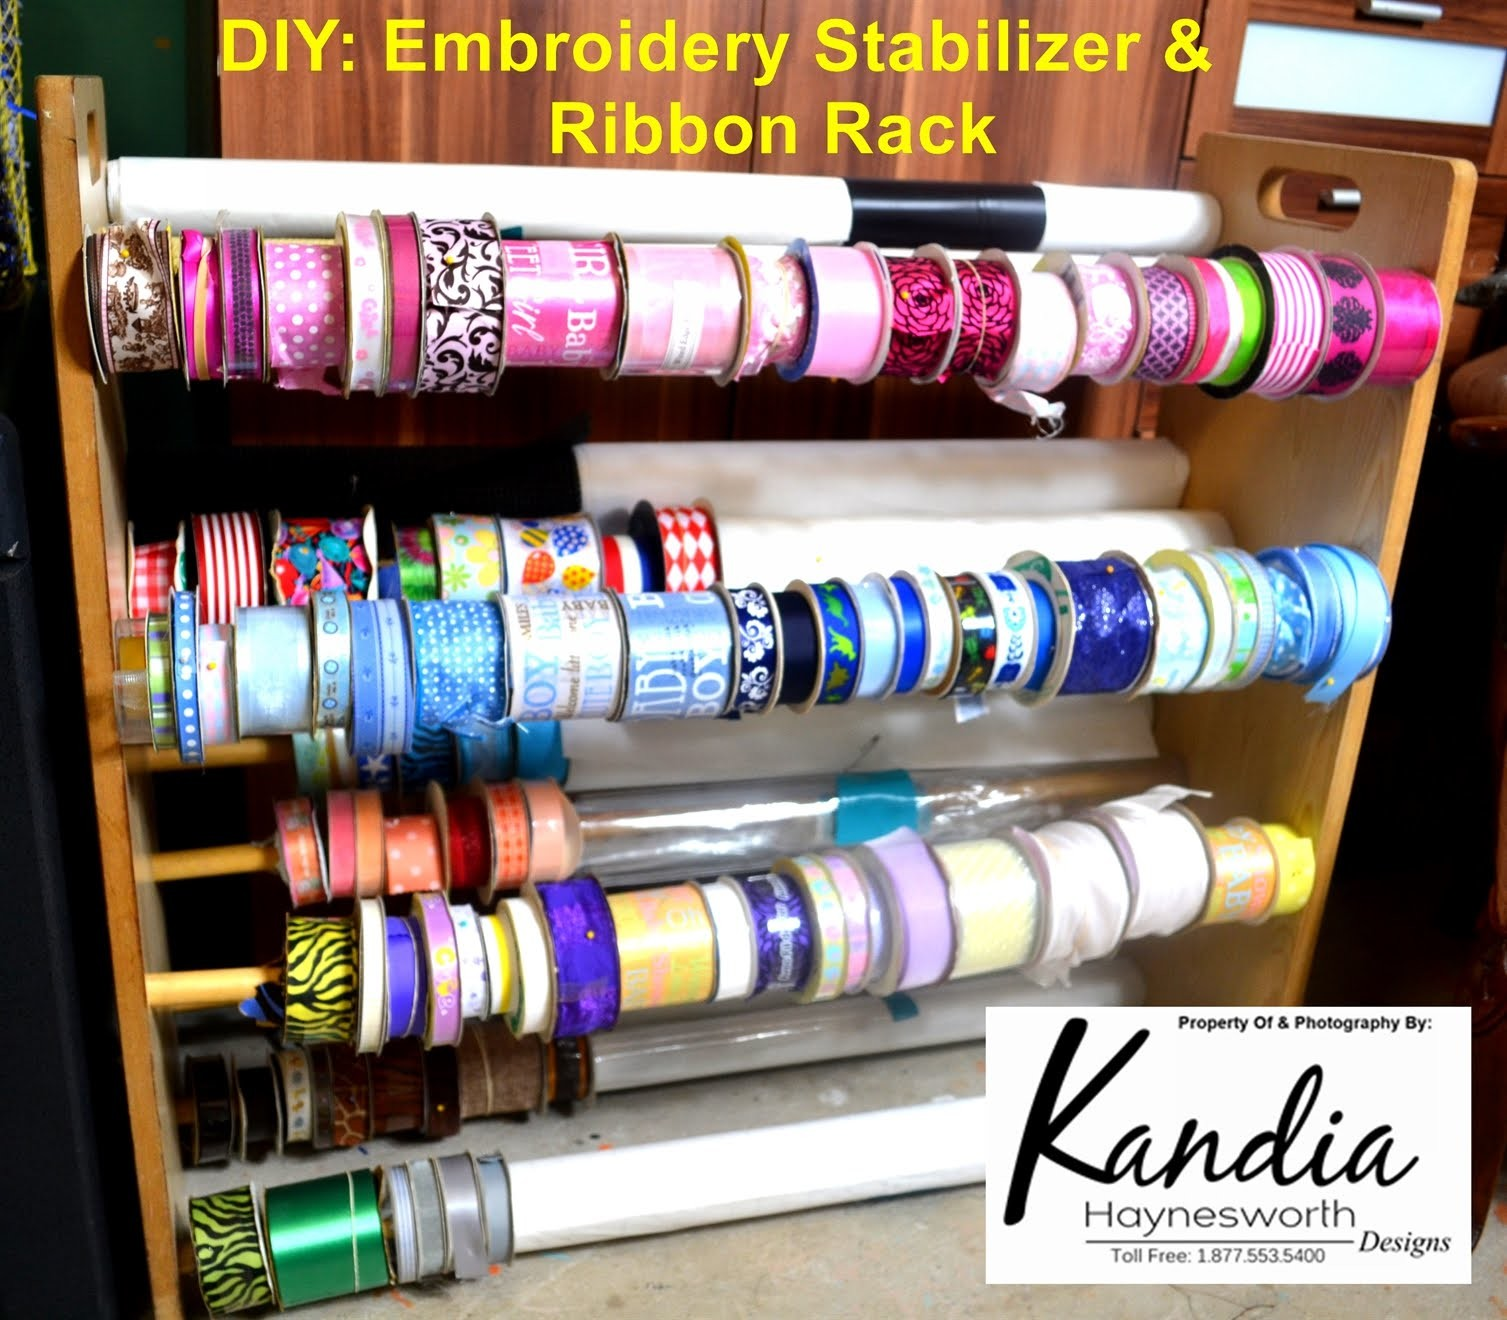 DIY: Embroidery Stabilizer & Ribbon Storage [Upcycle Tutorial]